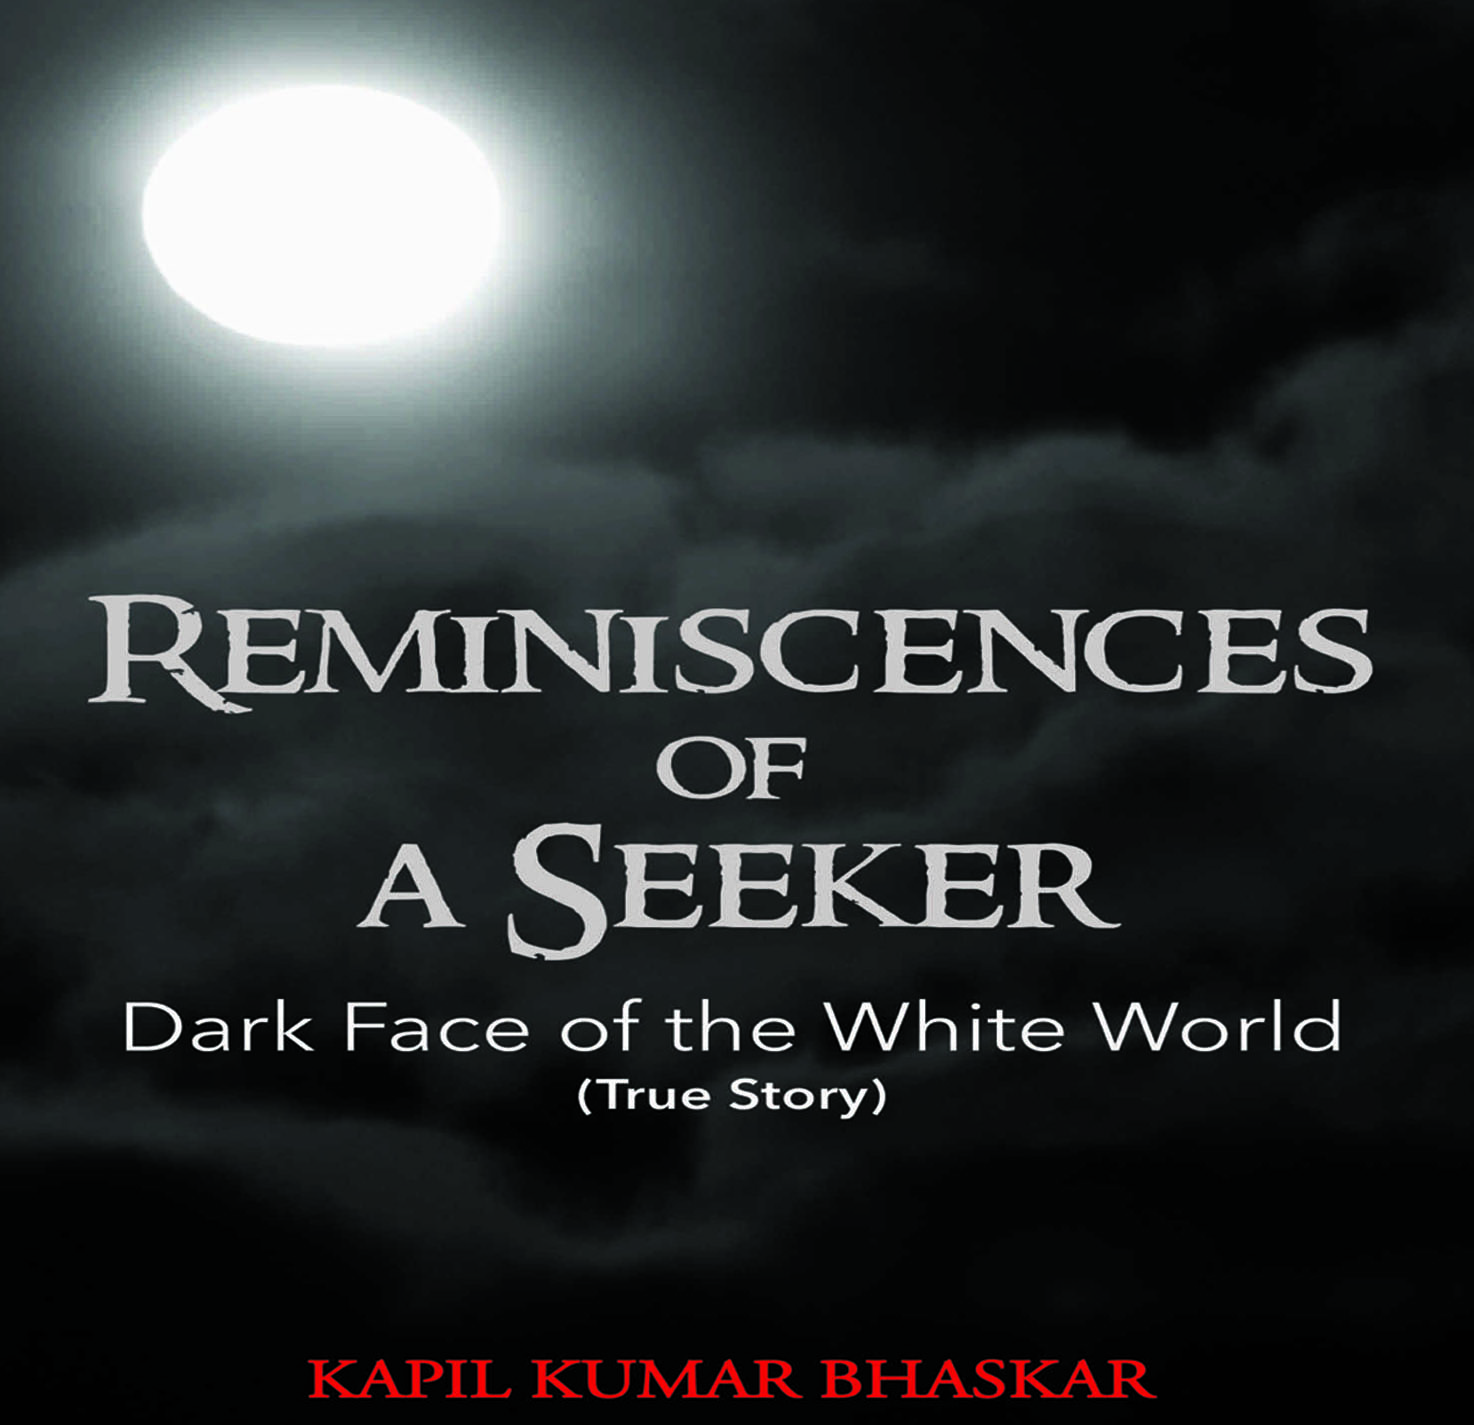 Reminiscences of a Seeker- Book Review